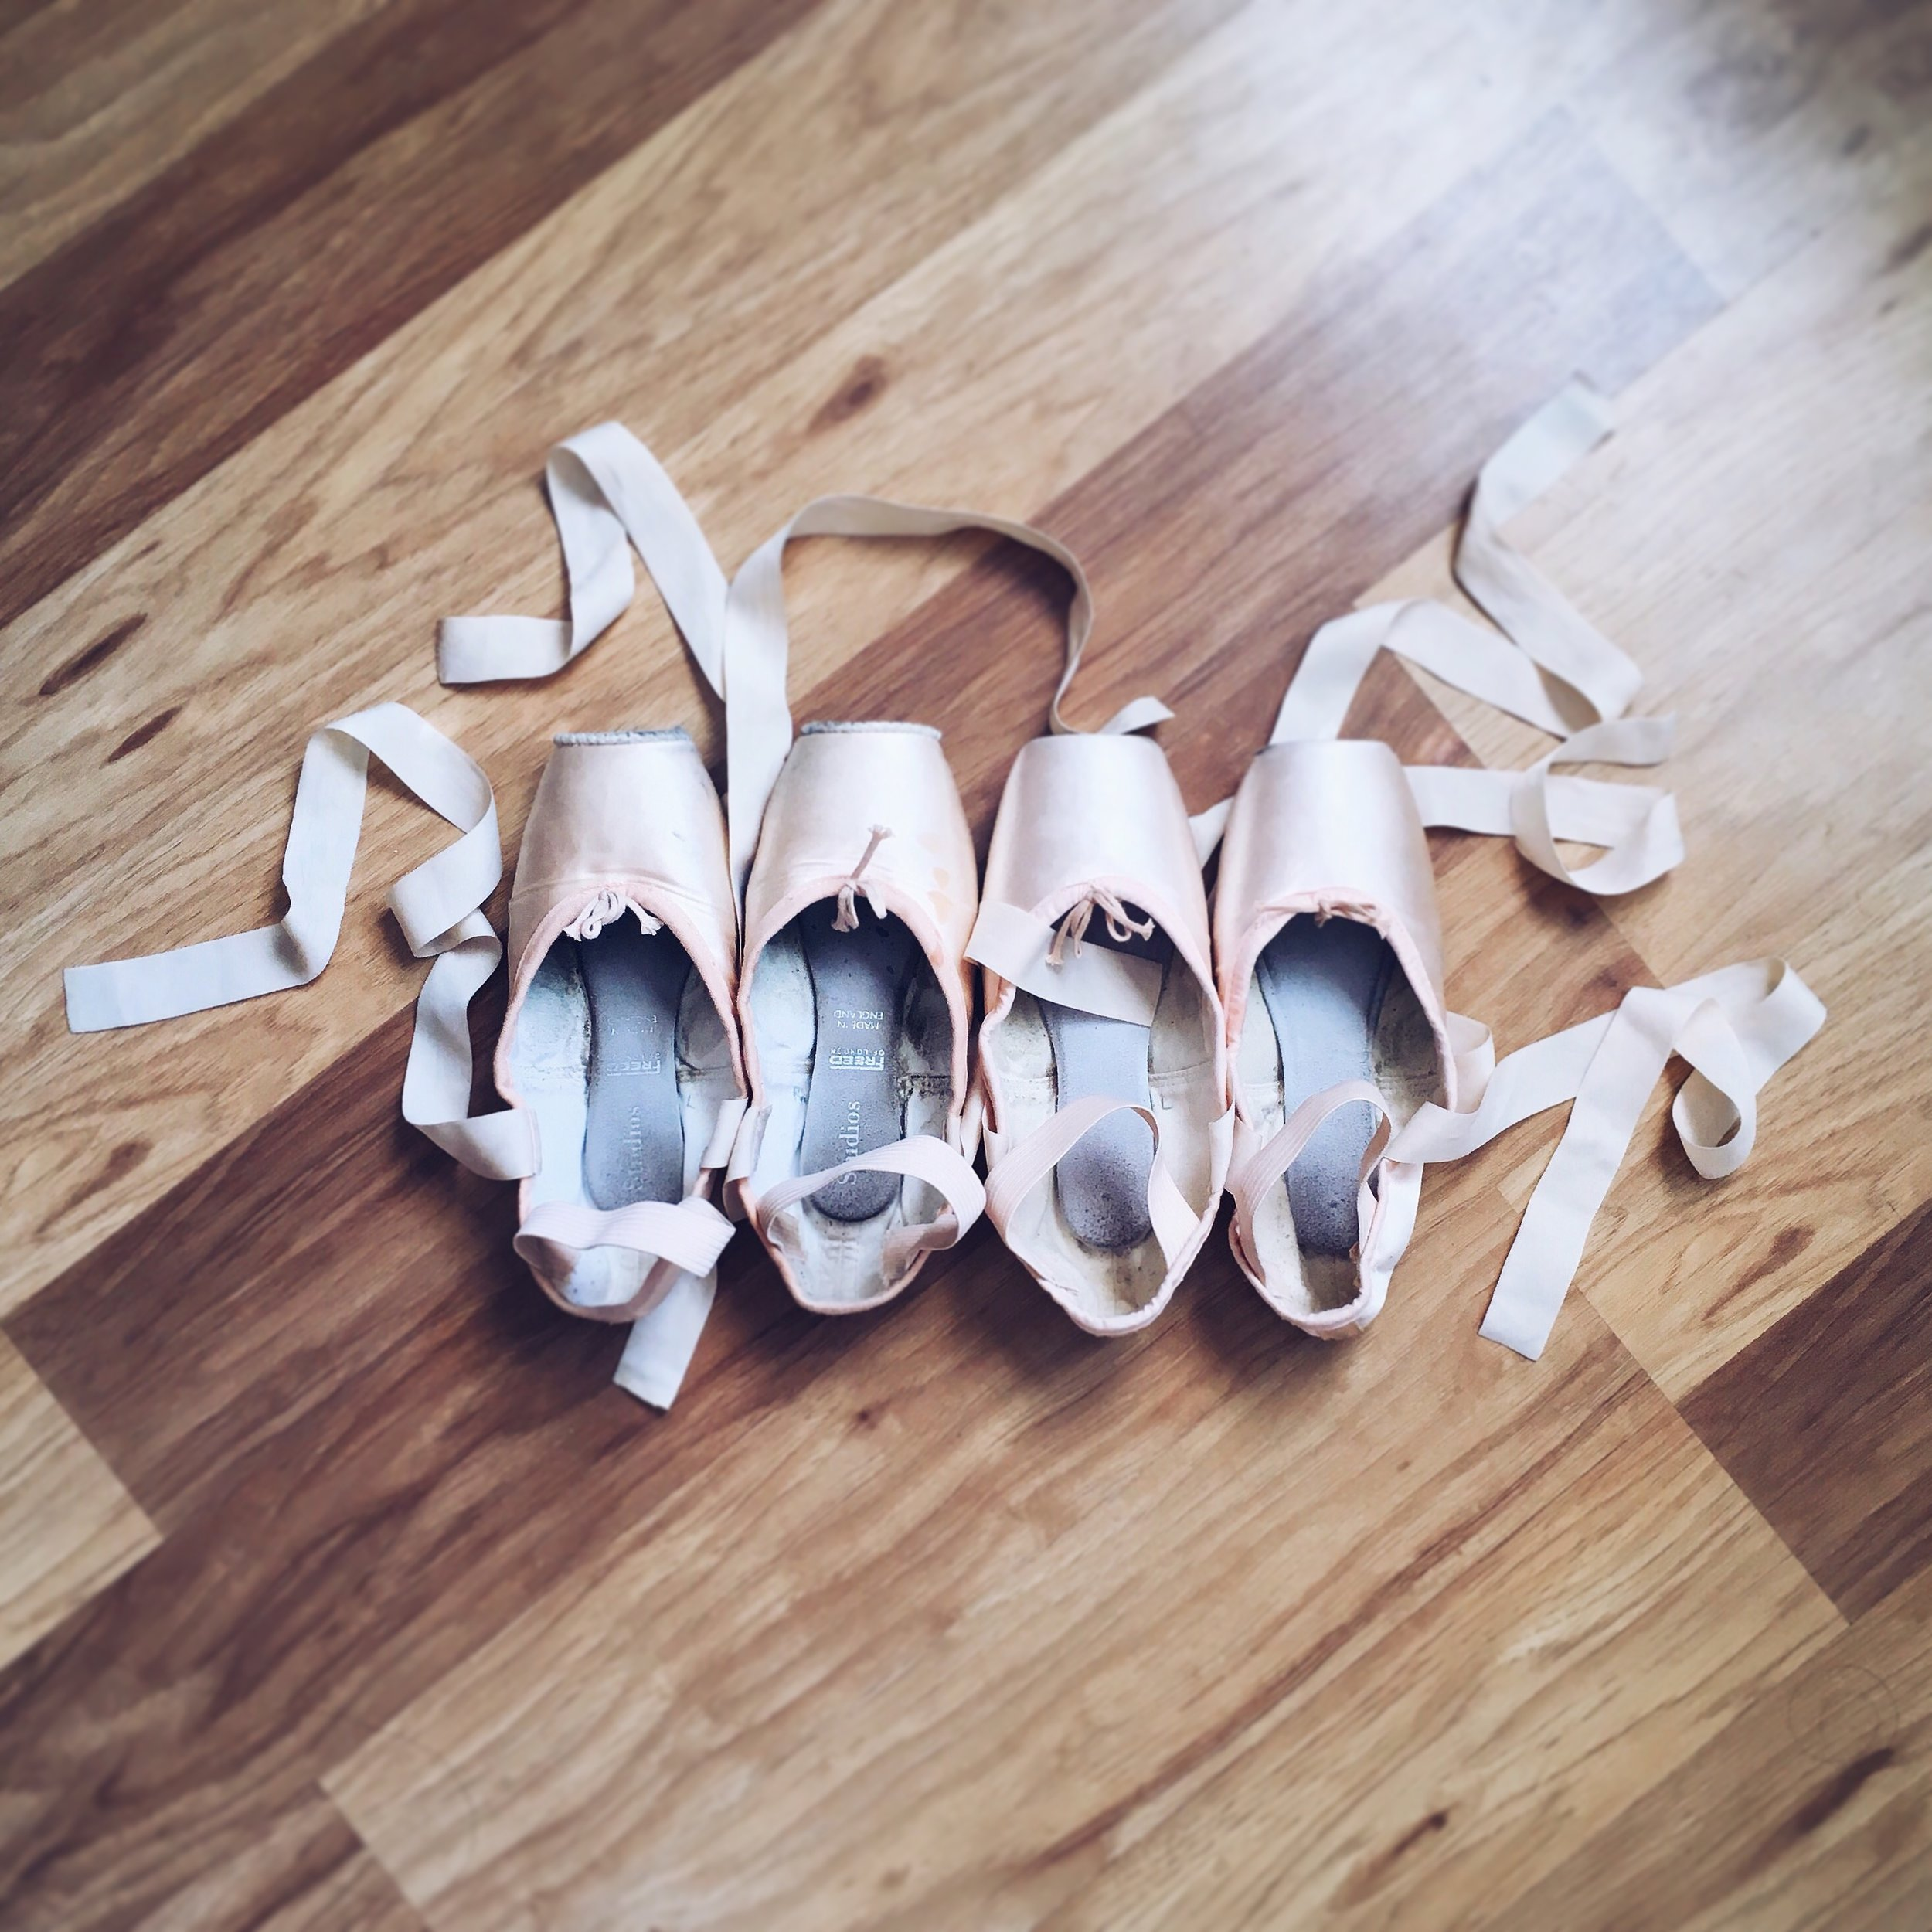 """Solo Artist Stephanie Joe explains: """"Here you can see two different pointe shoe brands I've been wearing - the shoes on the left have darning around the edge of the platform, and the shoes on the right are new and haven't been darned yet!"""""""